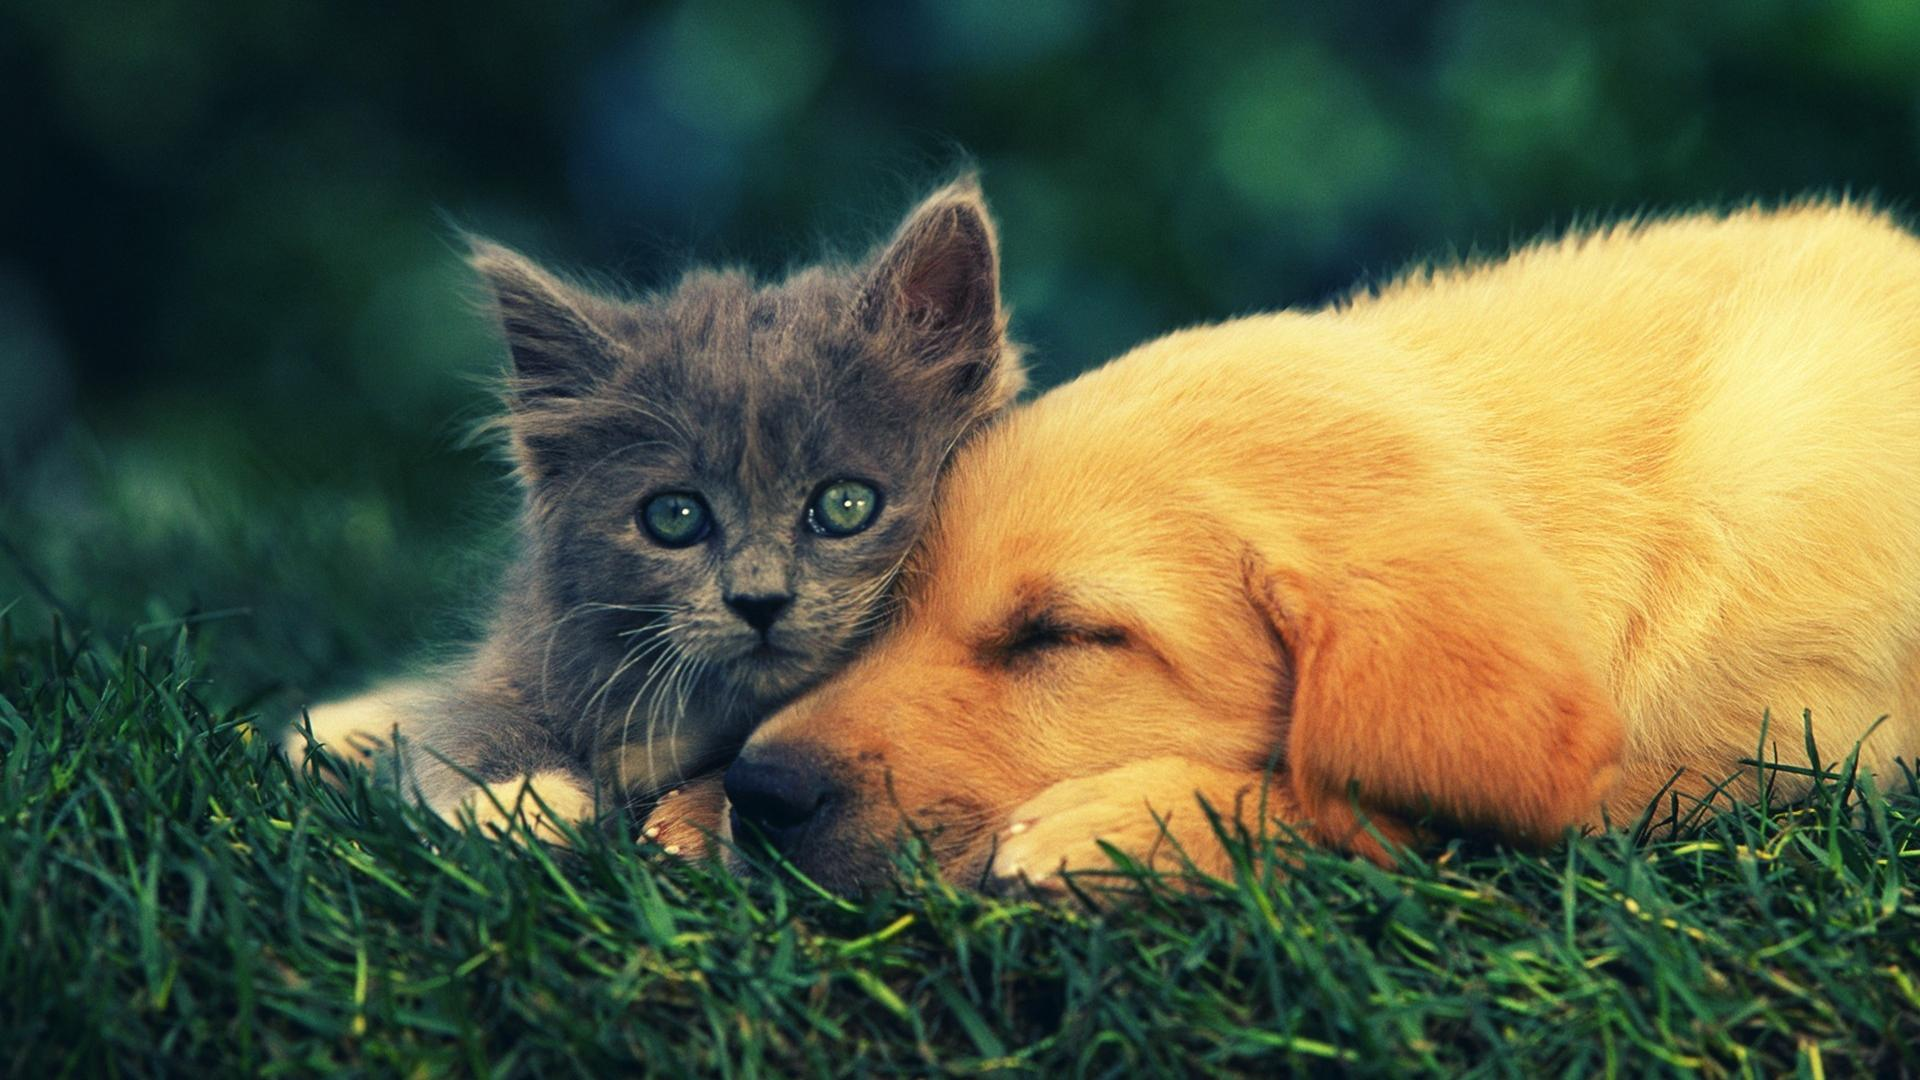 Cats And Dogs Wallpapers Top Free Cats And Dogs Backgrounds